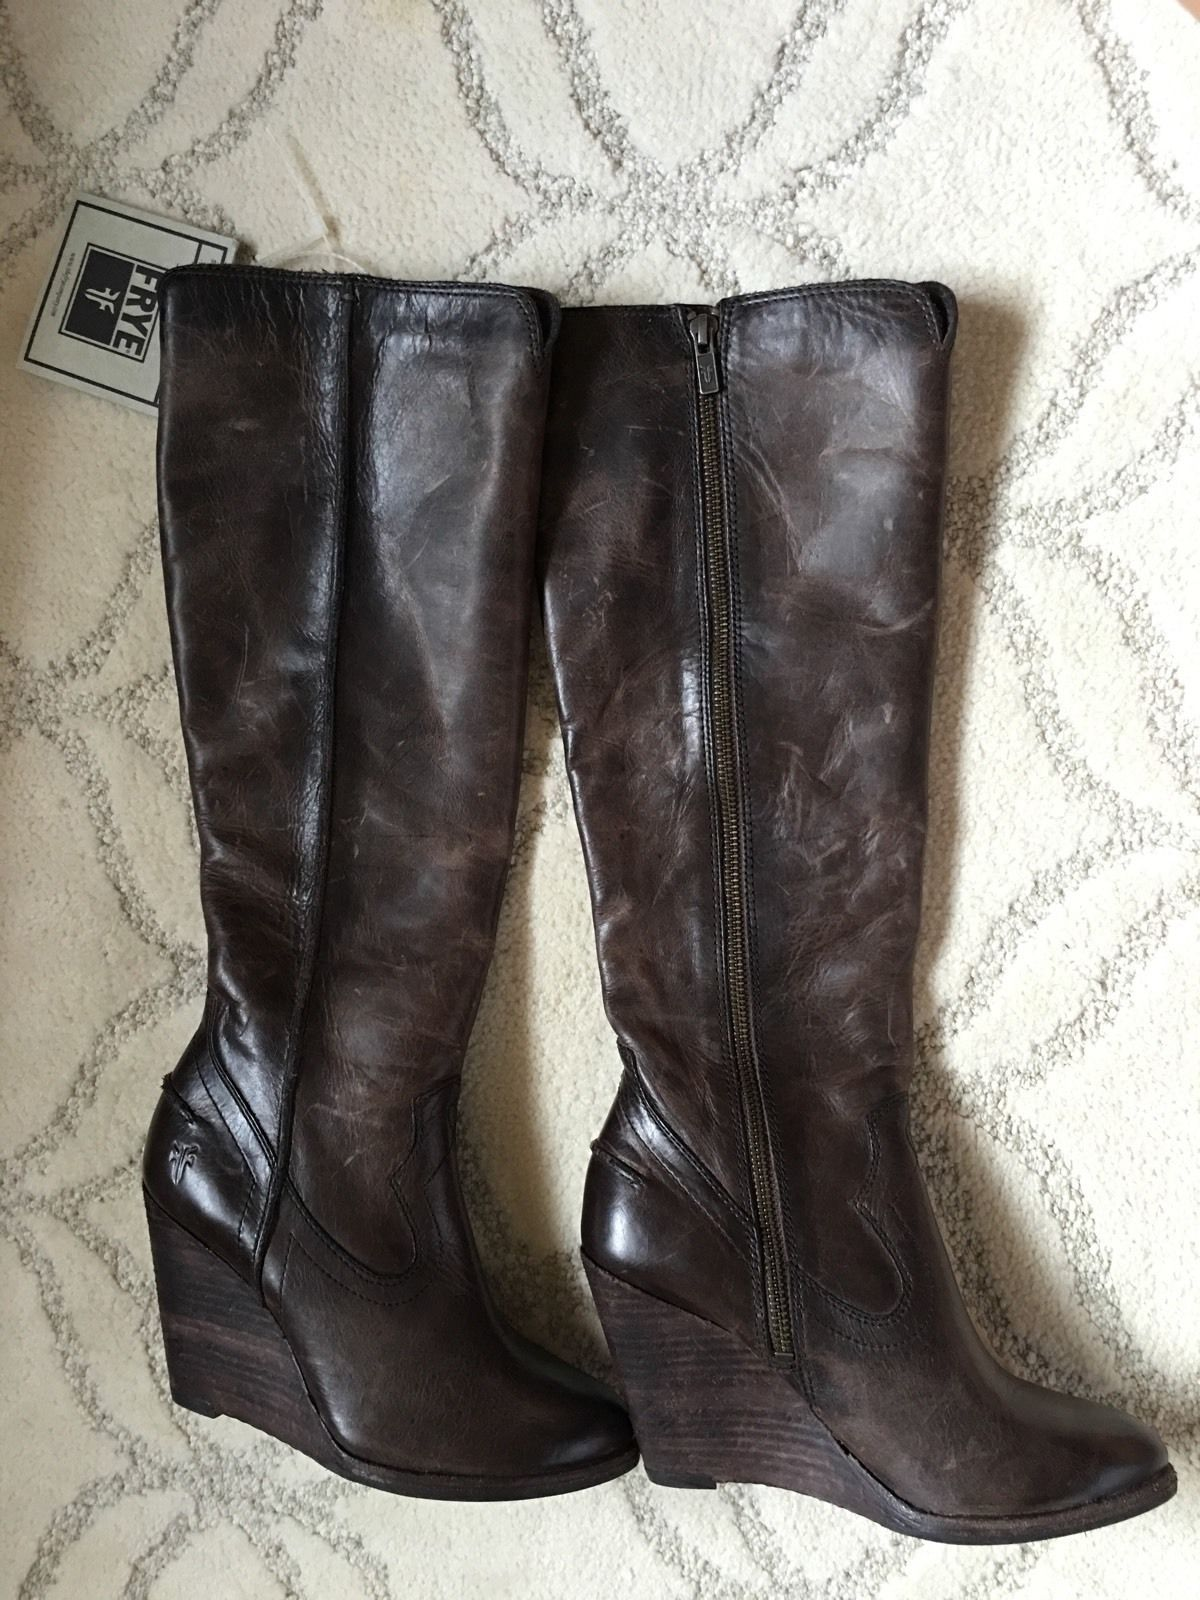 e8452cf1162 Frye Cece Seam Knee High Wedge Boots Womens 8 Slate Leather NEW  388  FABULOUS!